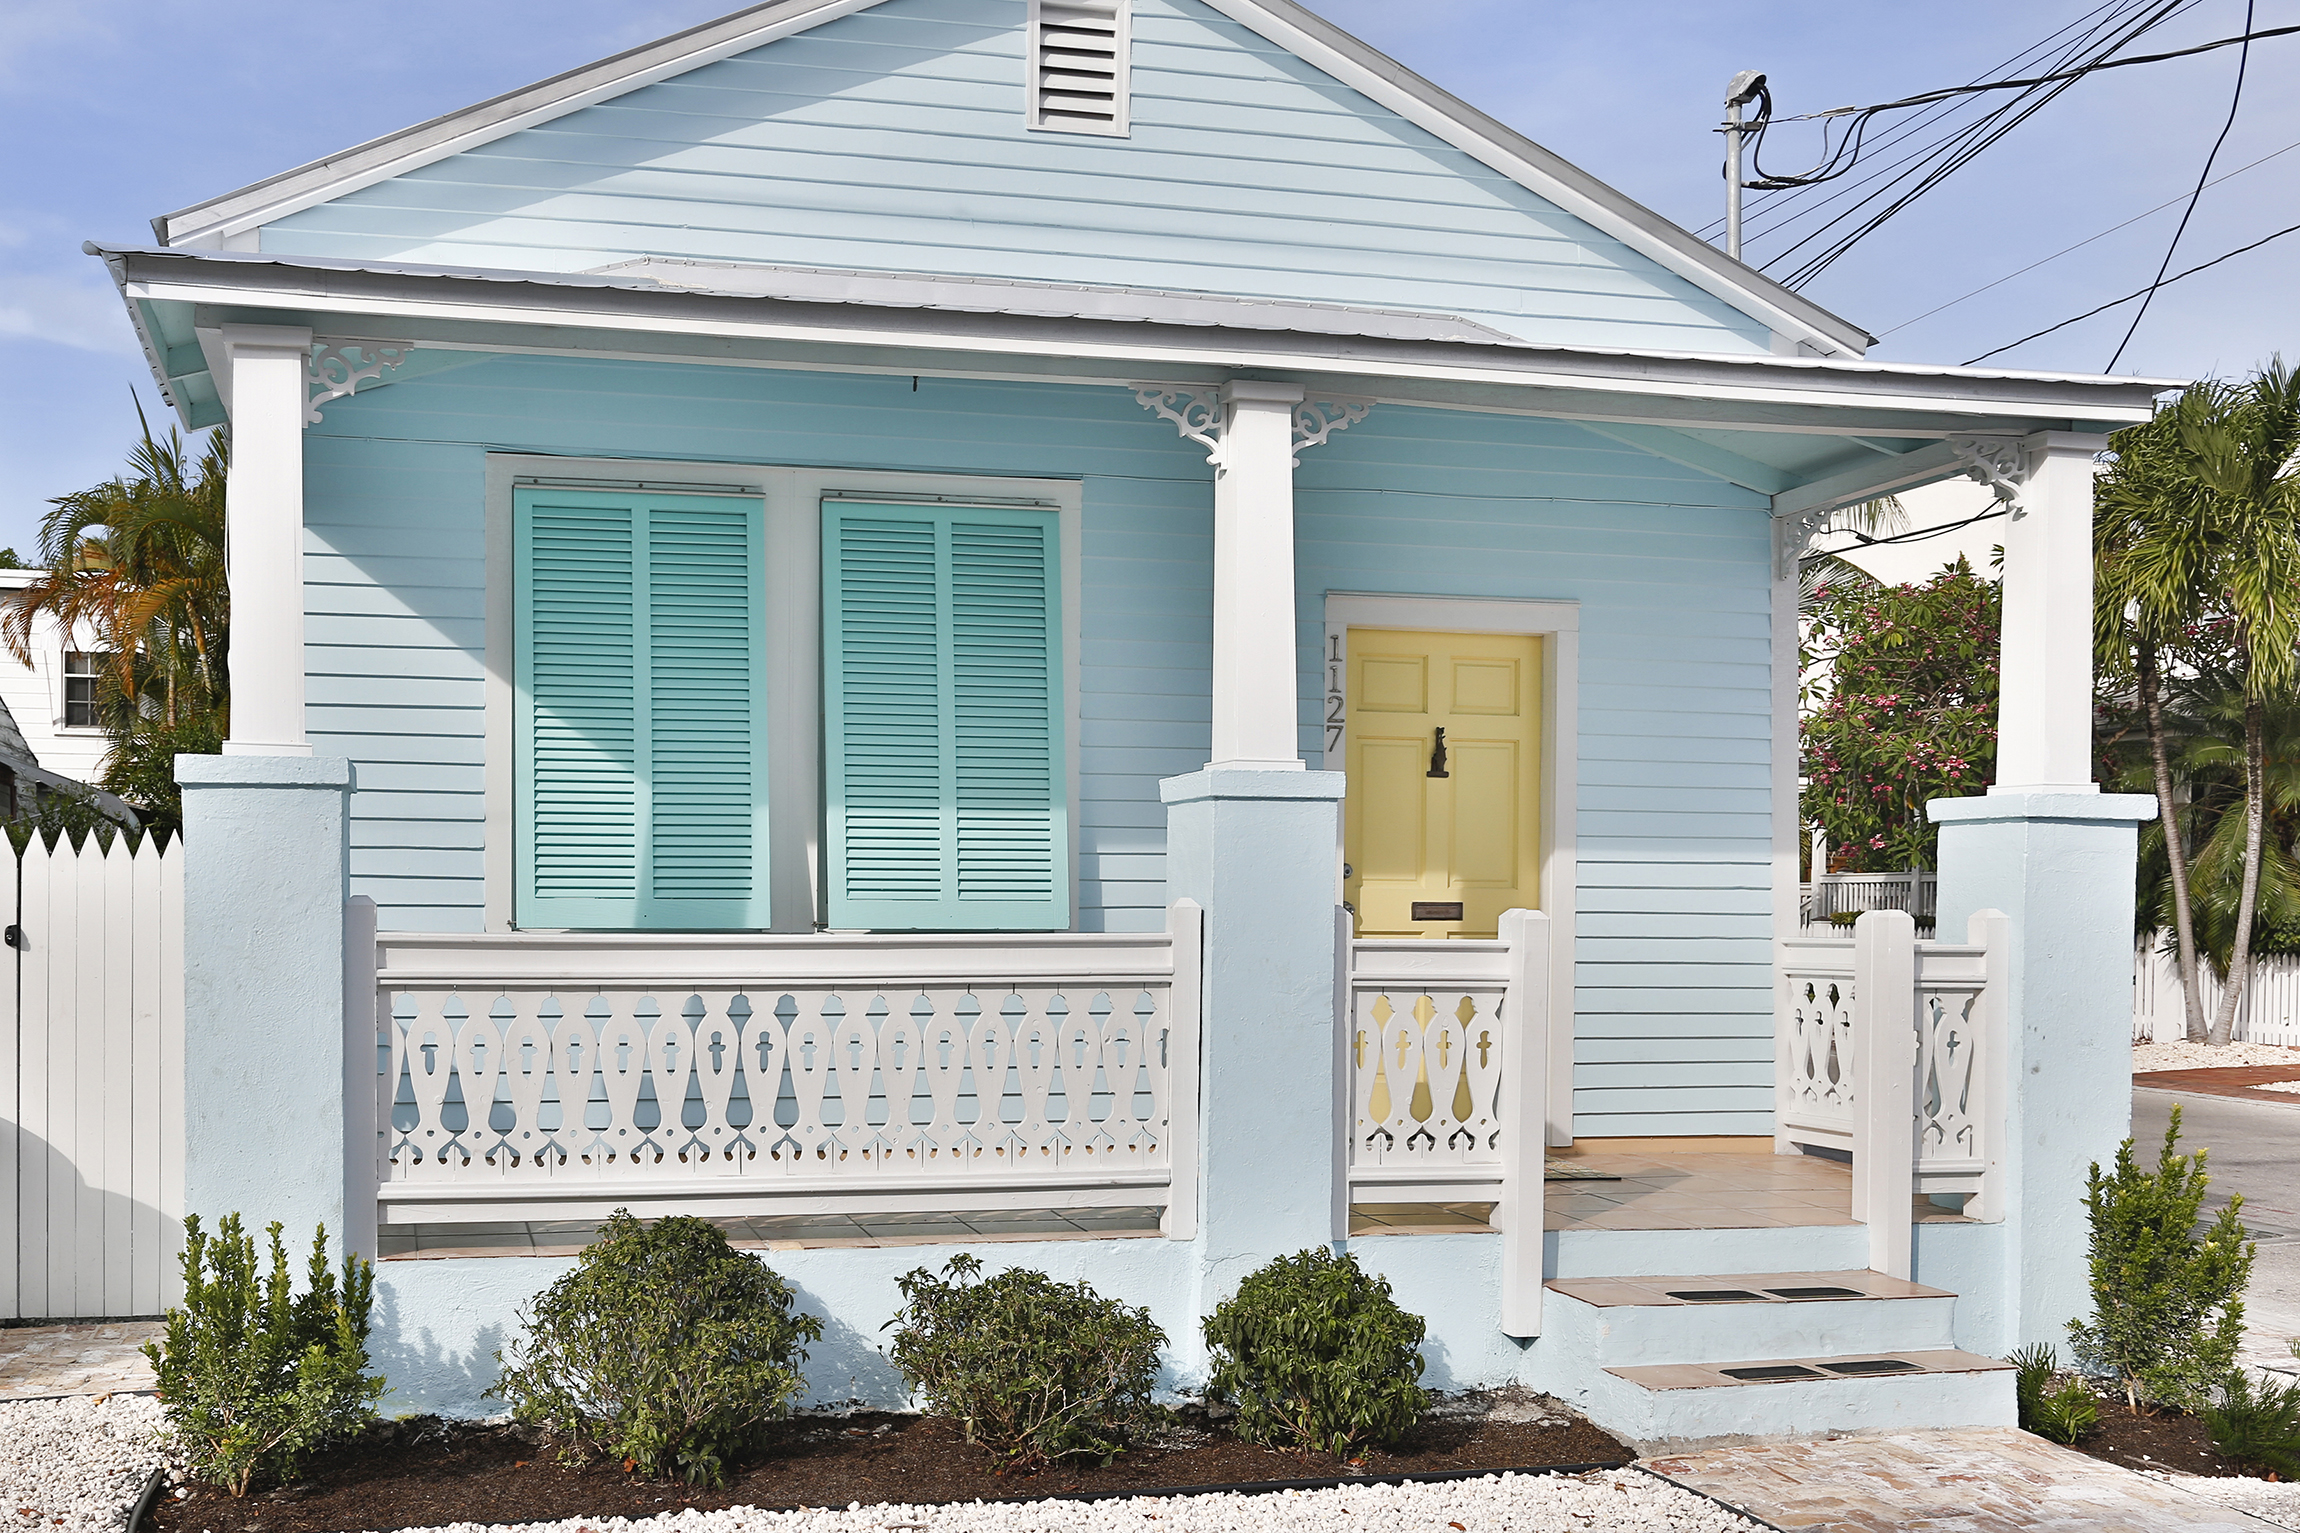 Beautifully painted in Key West colors, the quintessential conch cottage at 1127 Packer Street radiates captivating curb appeal.